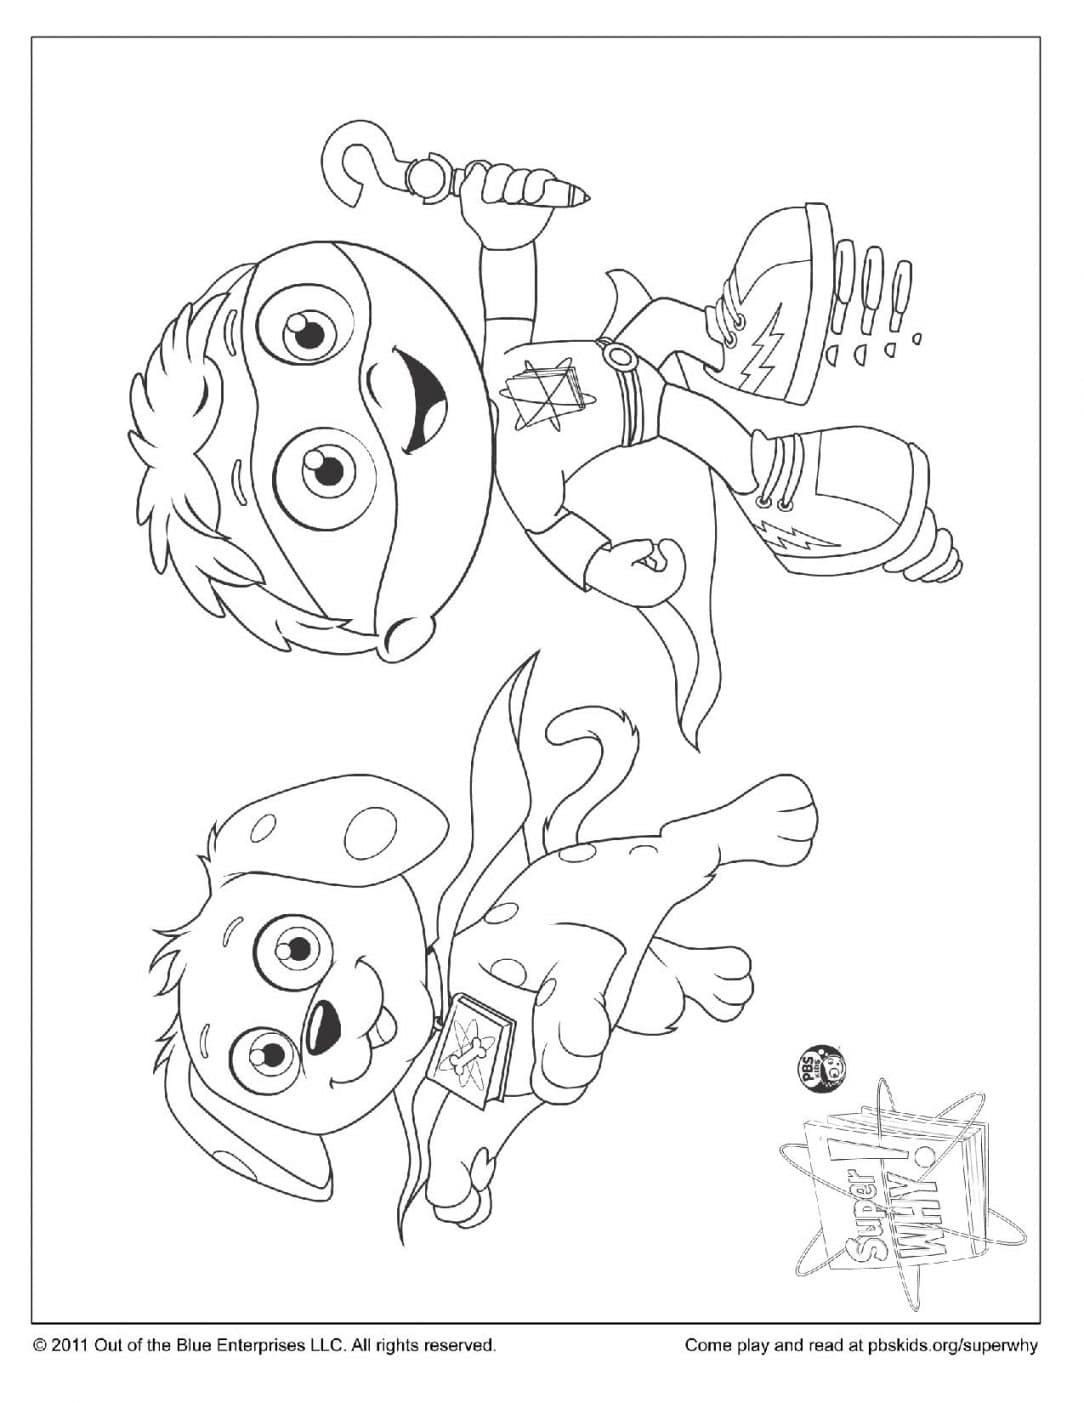 Bubble Guppies Coloring Pages - Woofster Super why Coloring Pages Coloring Pages